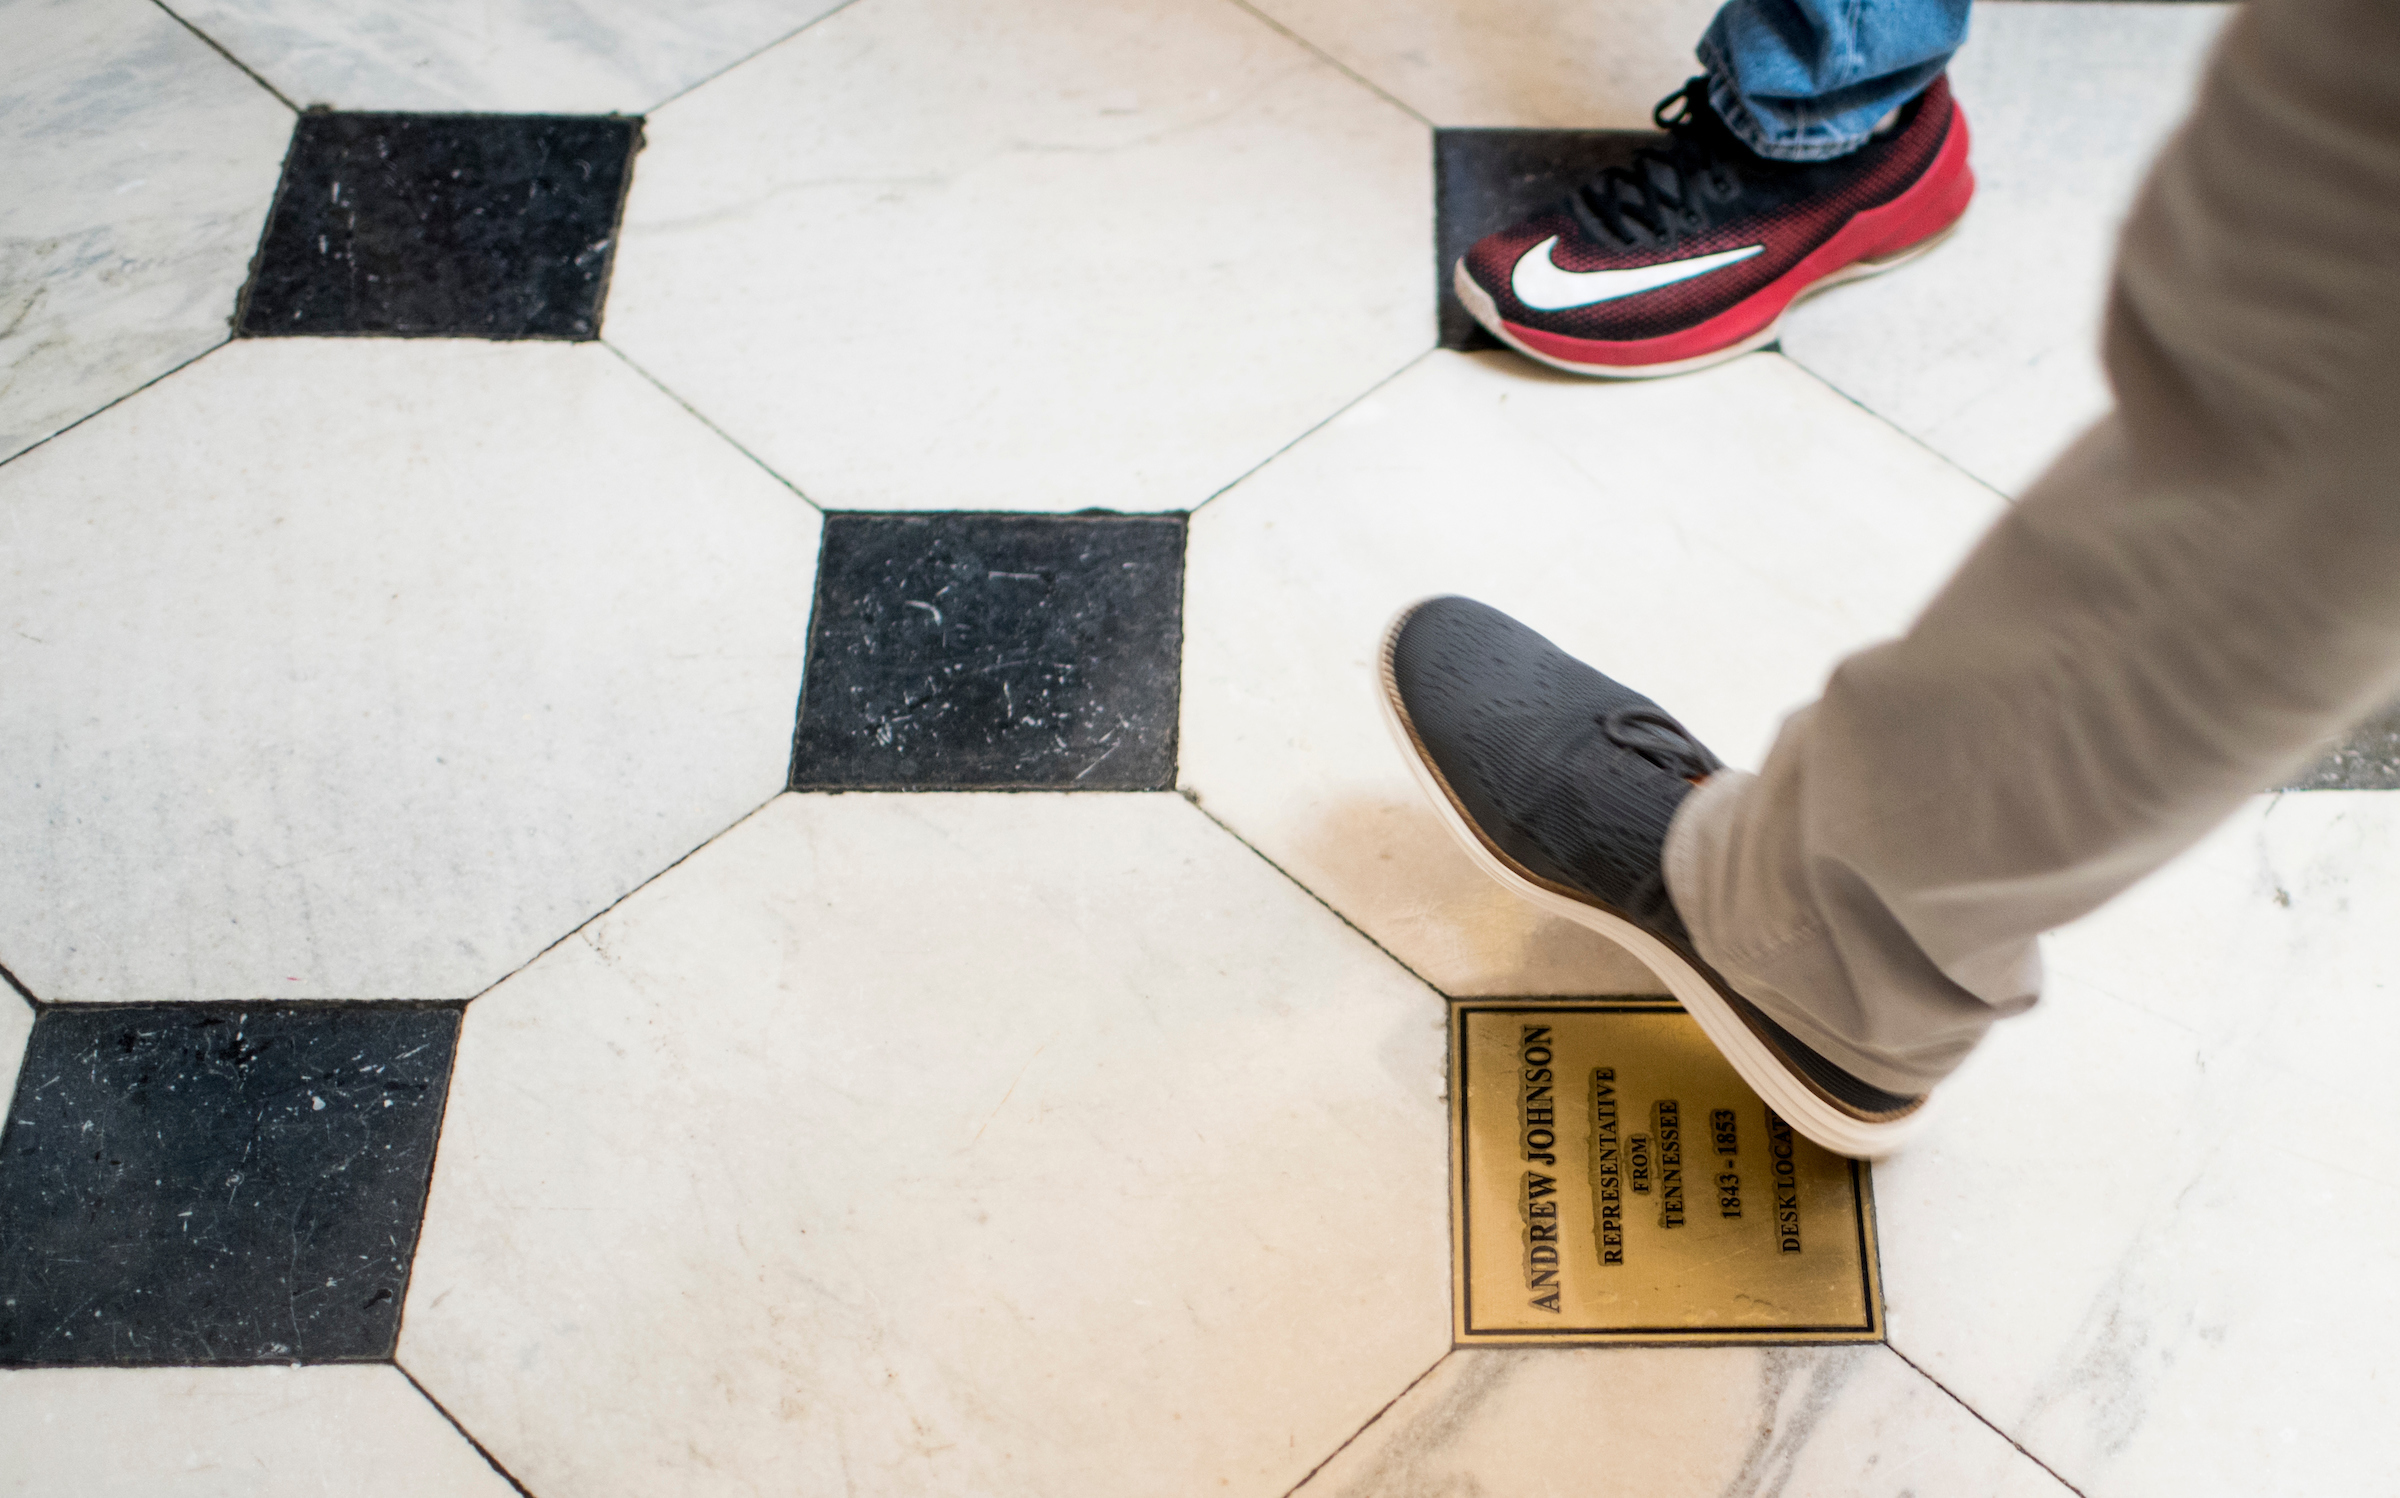 Tourists on Wednesday walk past a plaque in Statuary Hall marking Andrew Johnson's congressional seat. Johnson became the first U.S. president to be impeached, in 1868. (Bill Clark/CQ Roll Call)